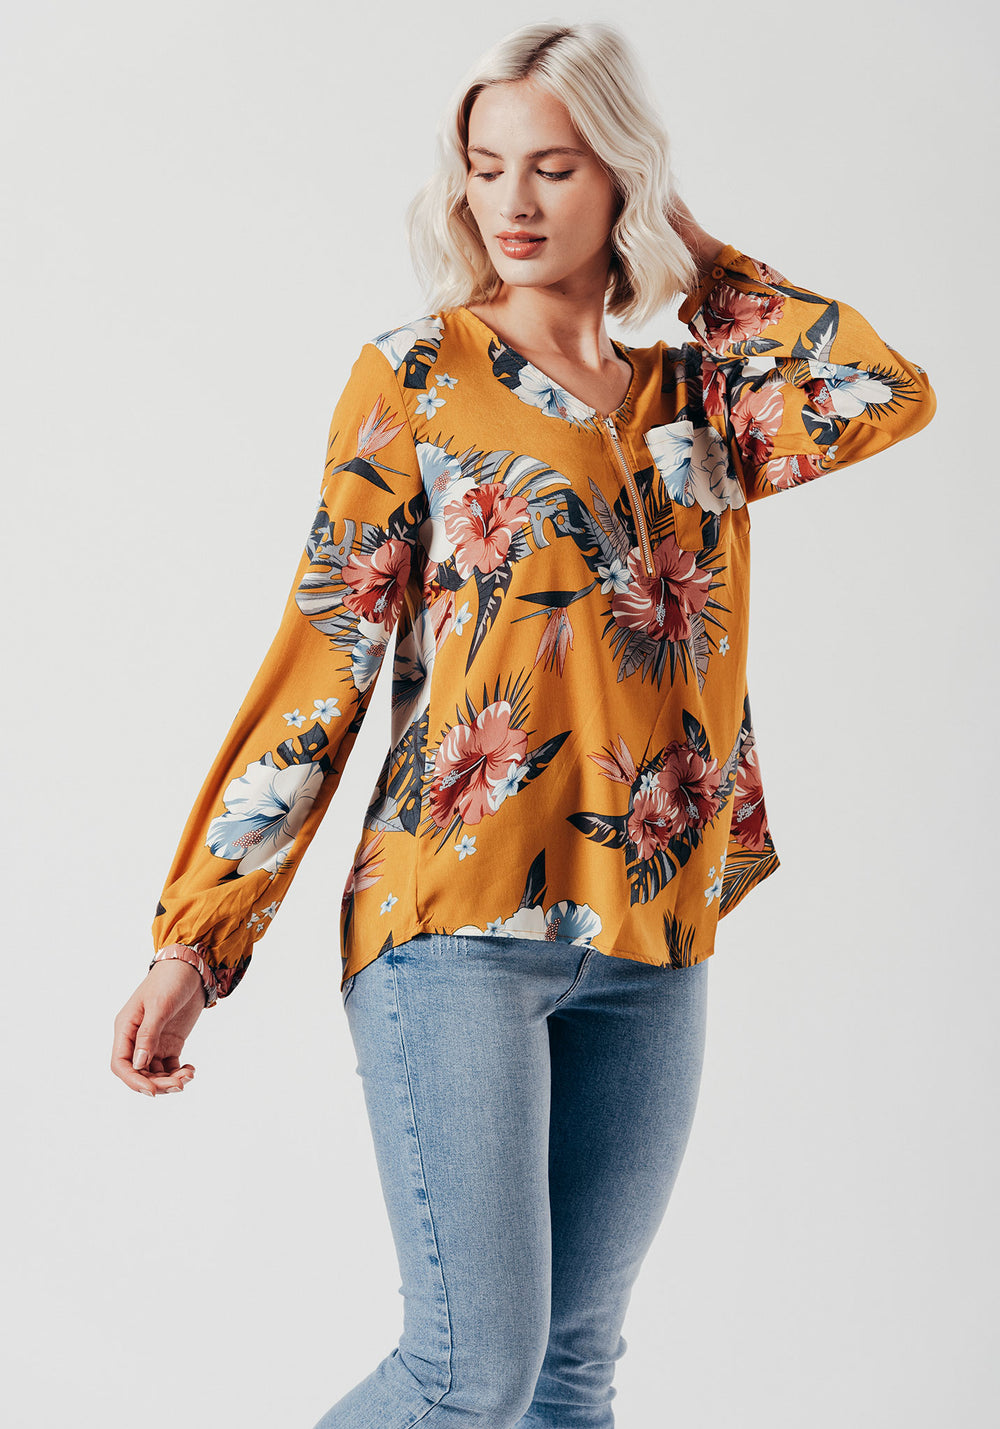 V Neck Zip Top in Yellow Floral Print